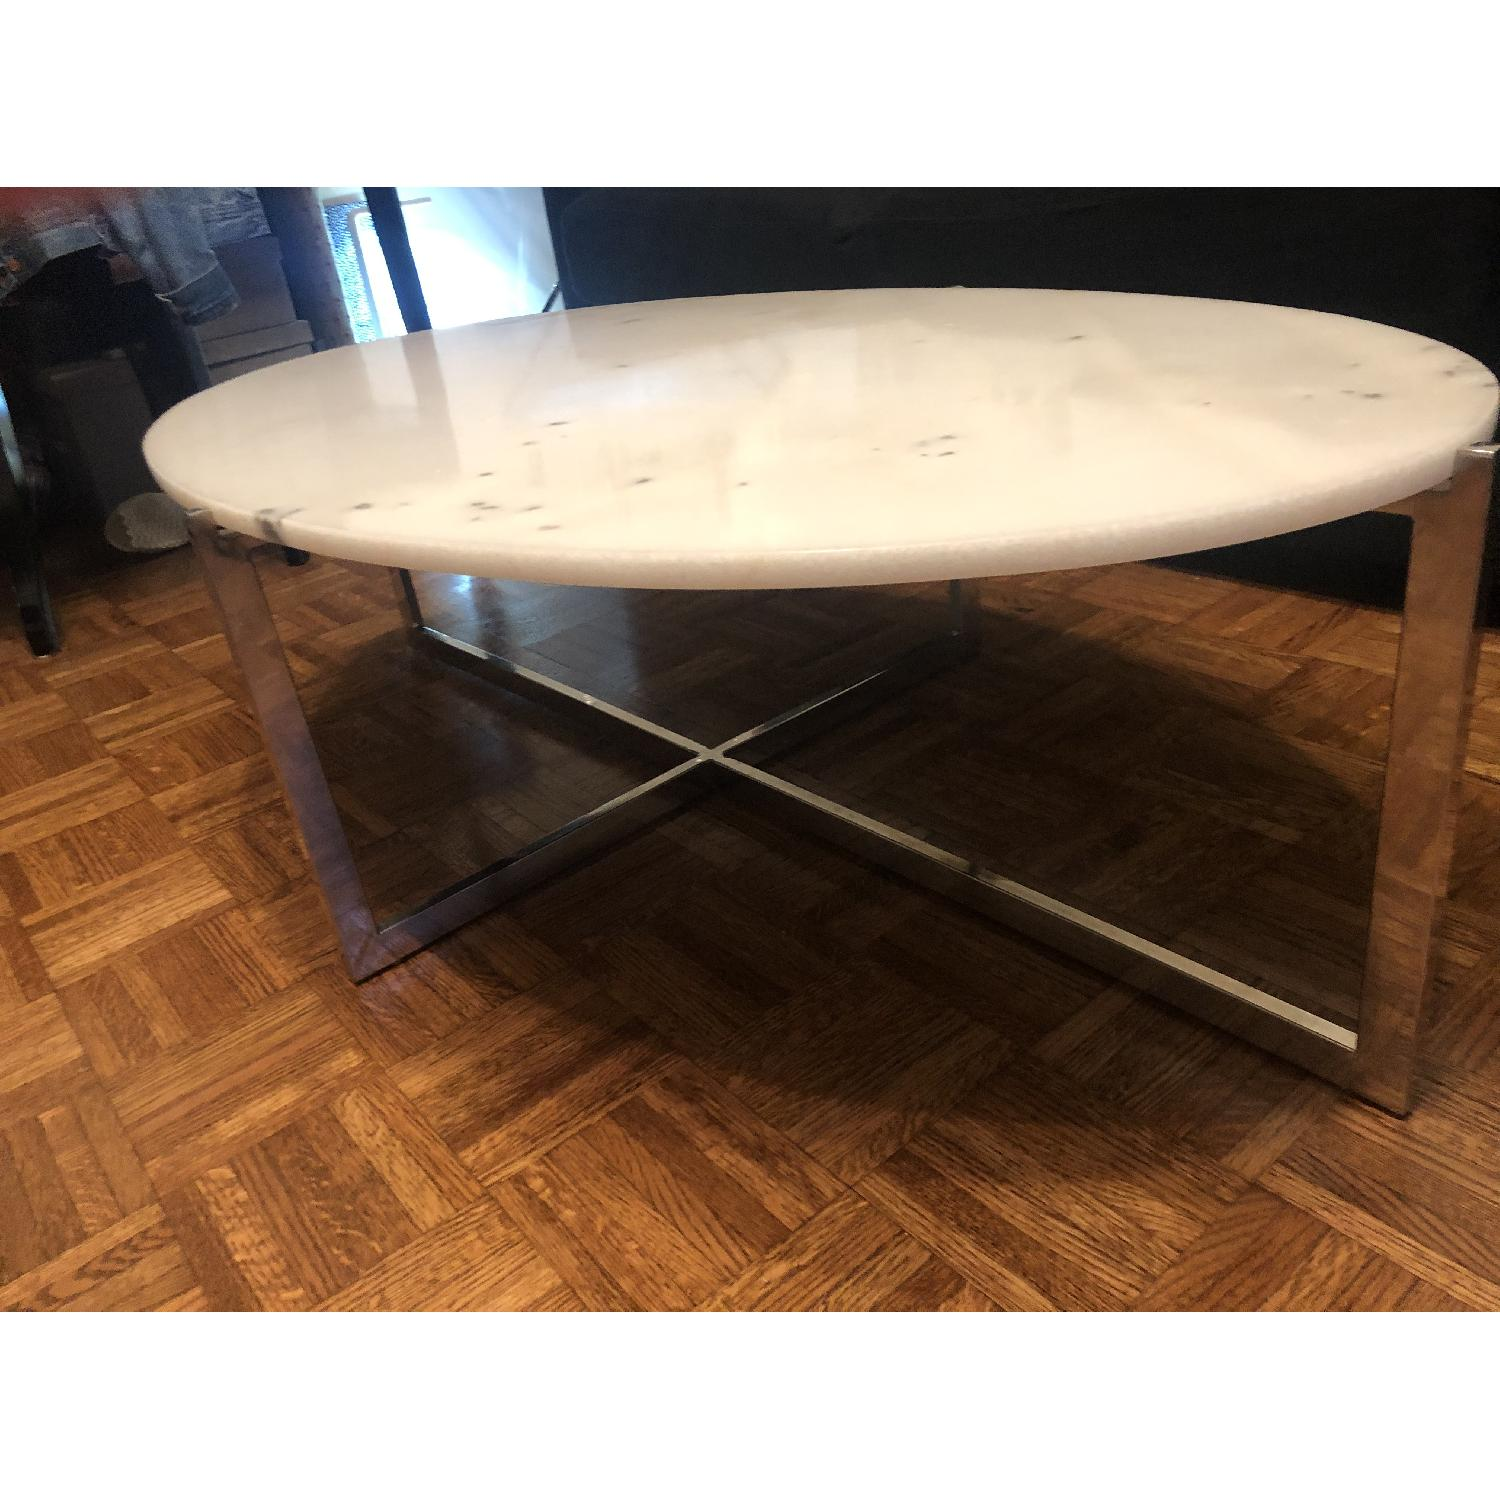 France and Son Oval Cantilevered Marble Coffee Table - image-1